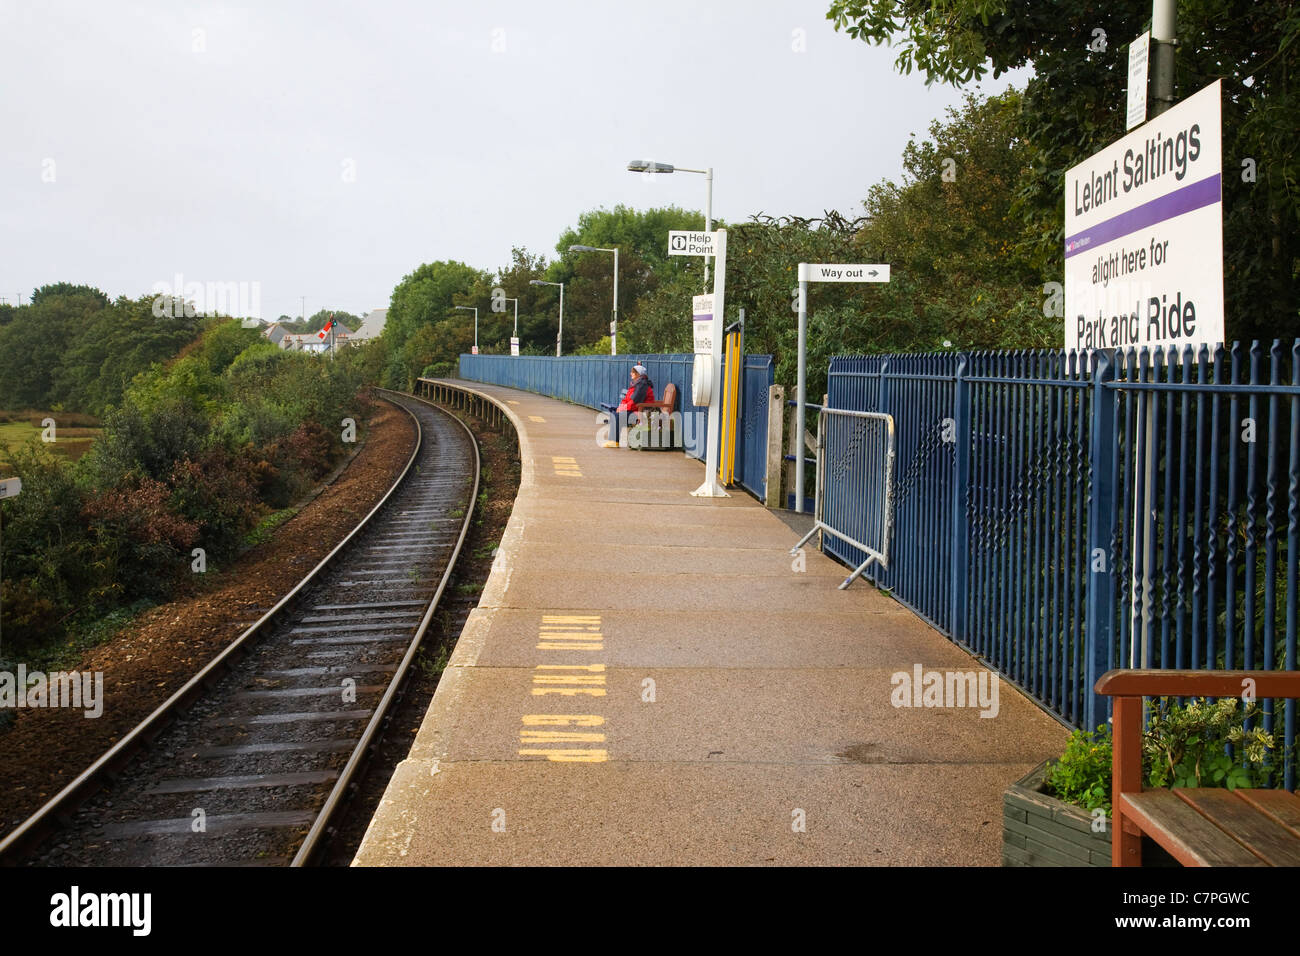 """Lelant Saltings"" railway station - St Ives Park & Ride, Cornwall, UK. Stock Photo"